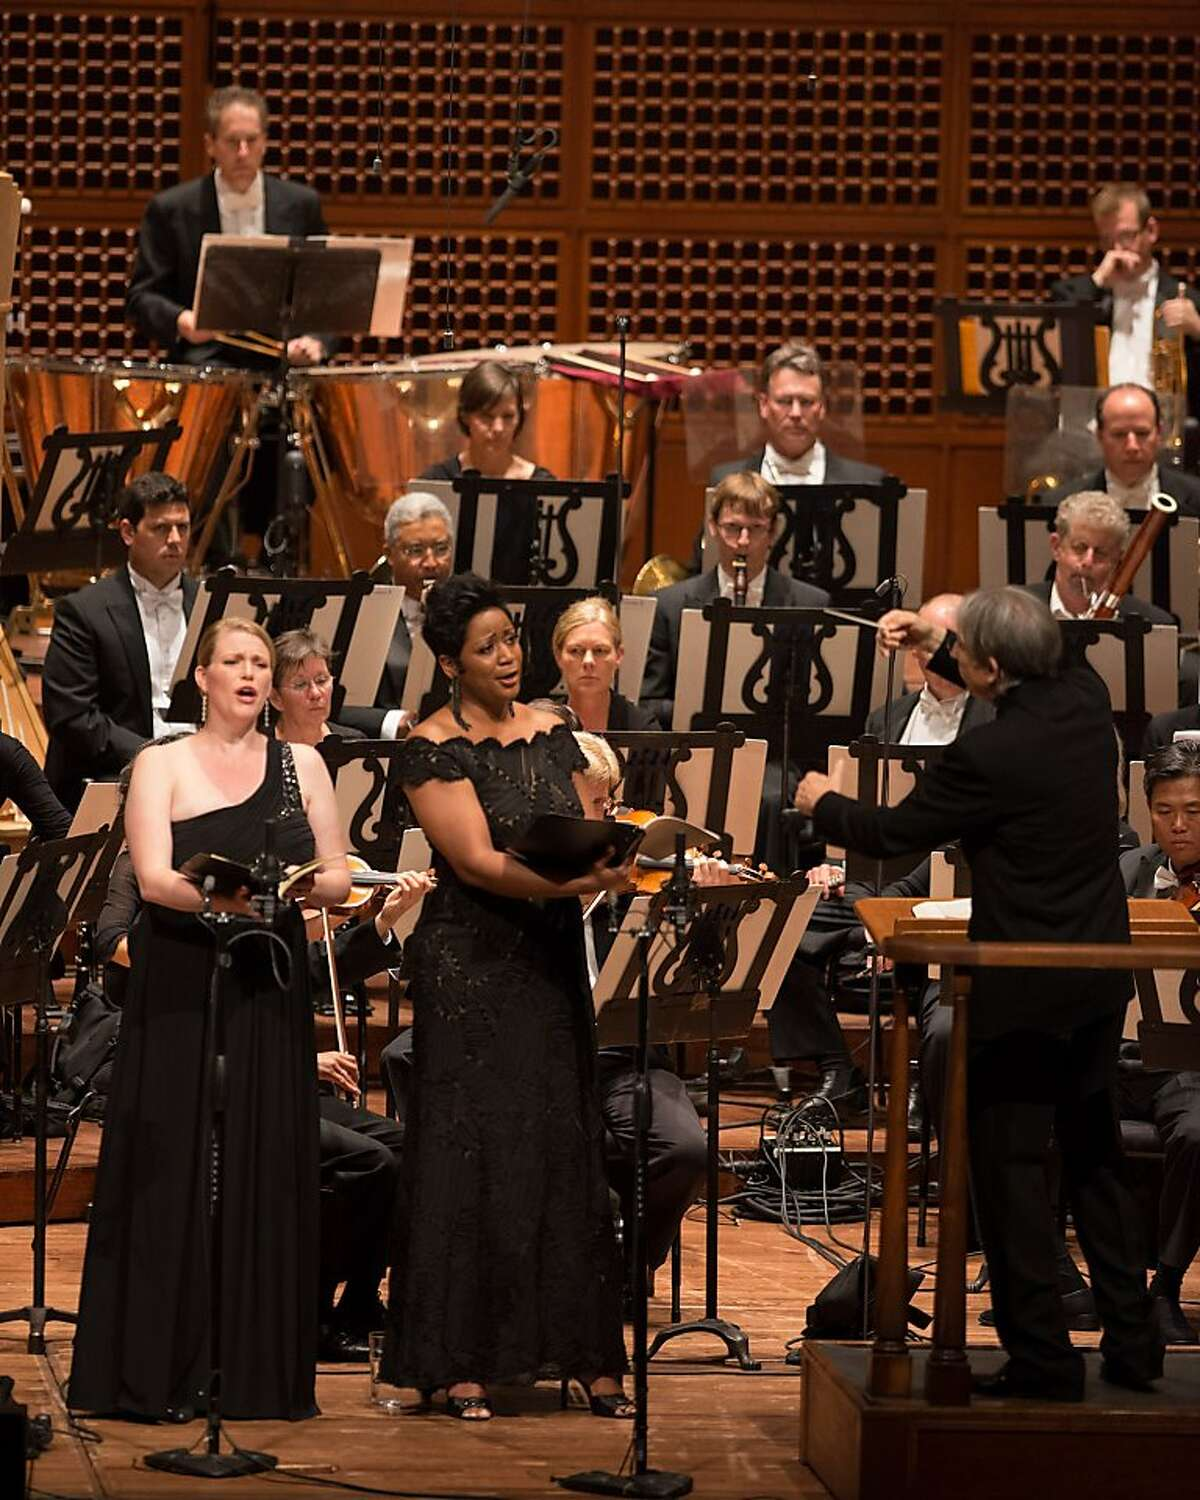 Music Director Michael Tilson Thomas conducts the San Francisco Symphony and Chorus and guest soloists soprano Erin Wall (l.), and mezzo-soprano Kendall Gladen, in Beethoven's Symphony No. 9 at Davies Symphony Hall June 27-30, 2012.